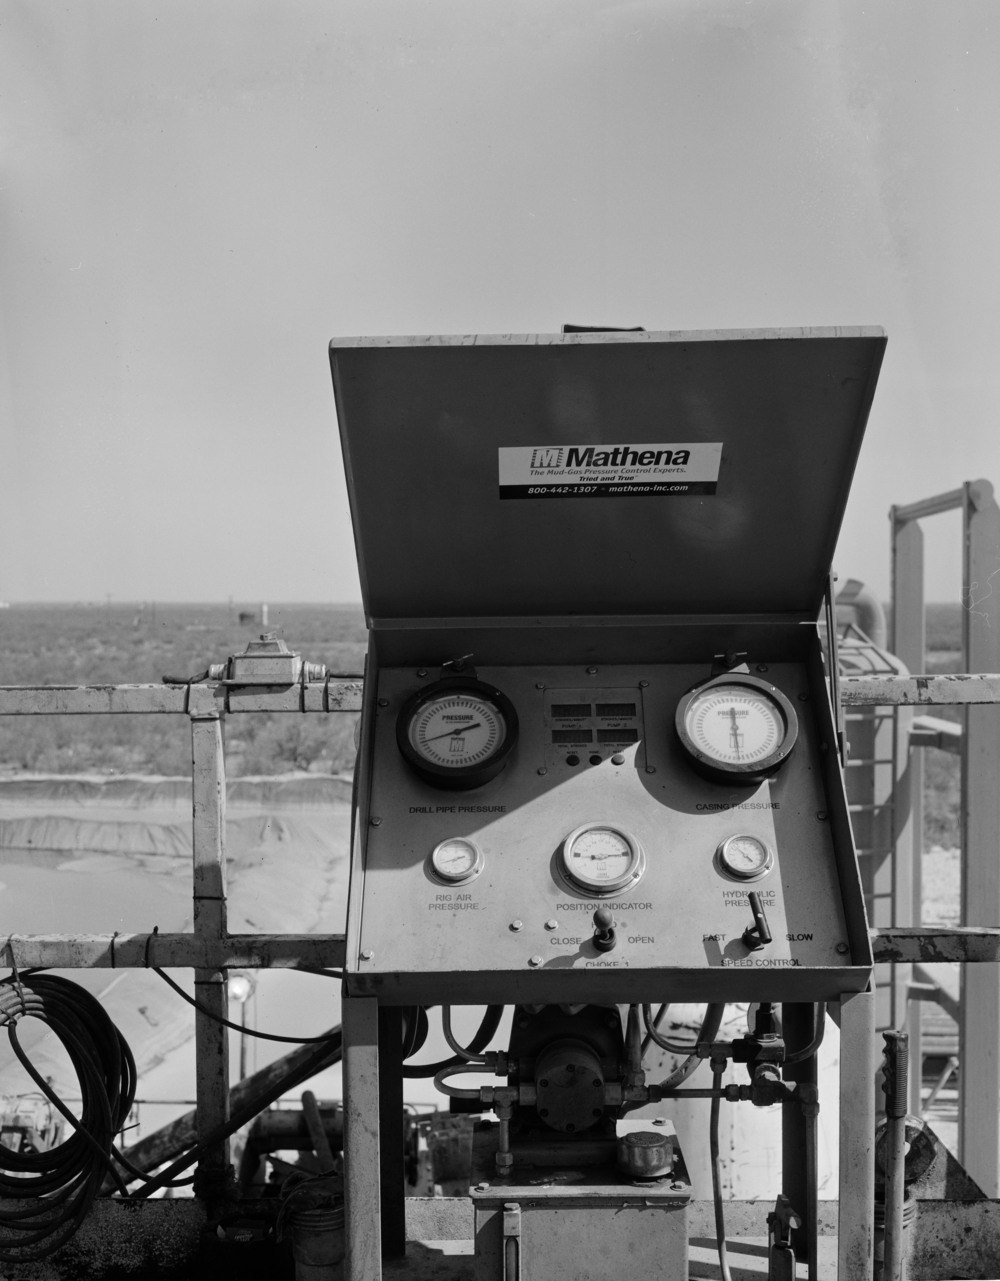 4x5 film taken in the oil fields of West Texas.